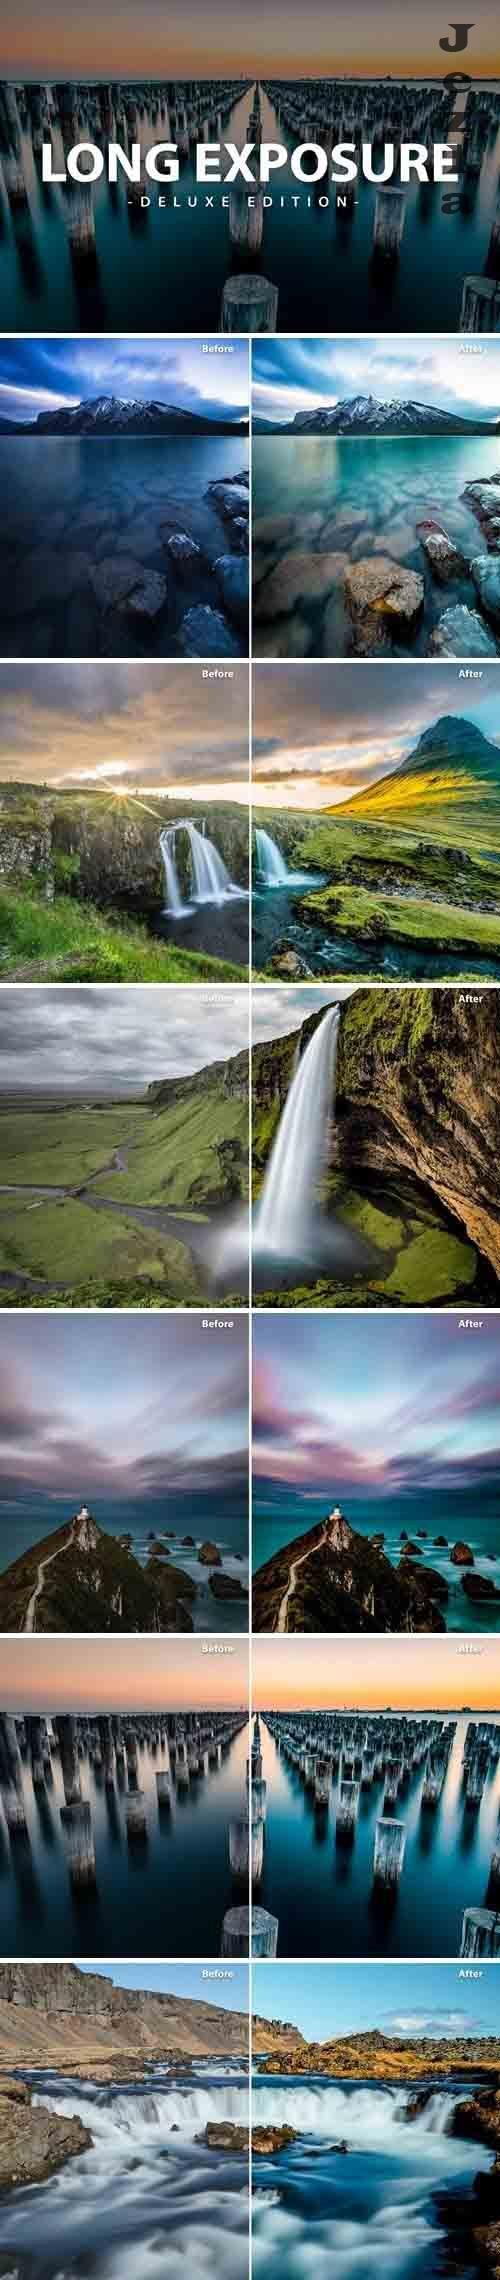 Long Exposure | Deluxe Pack for Mobile and Desktop